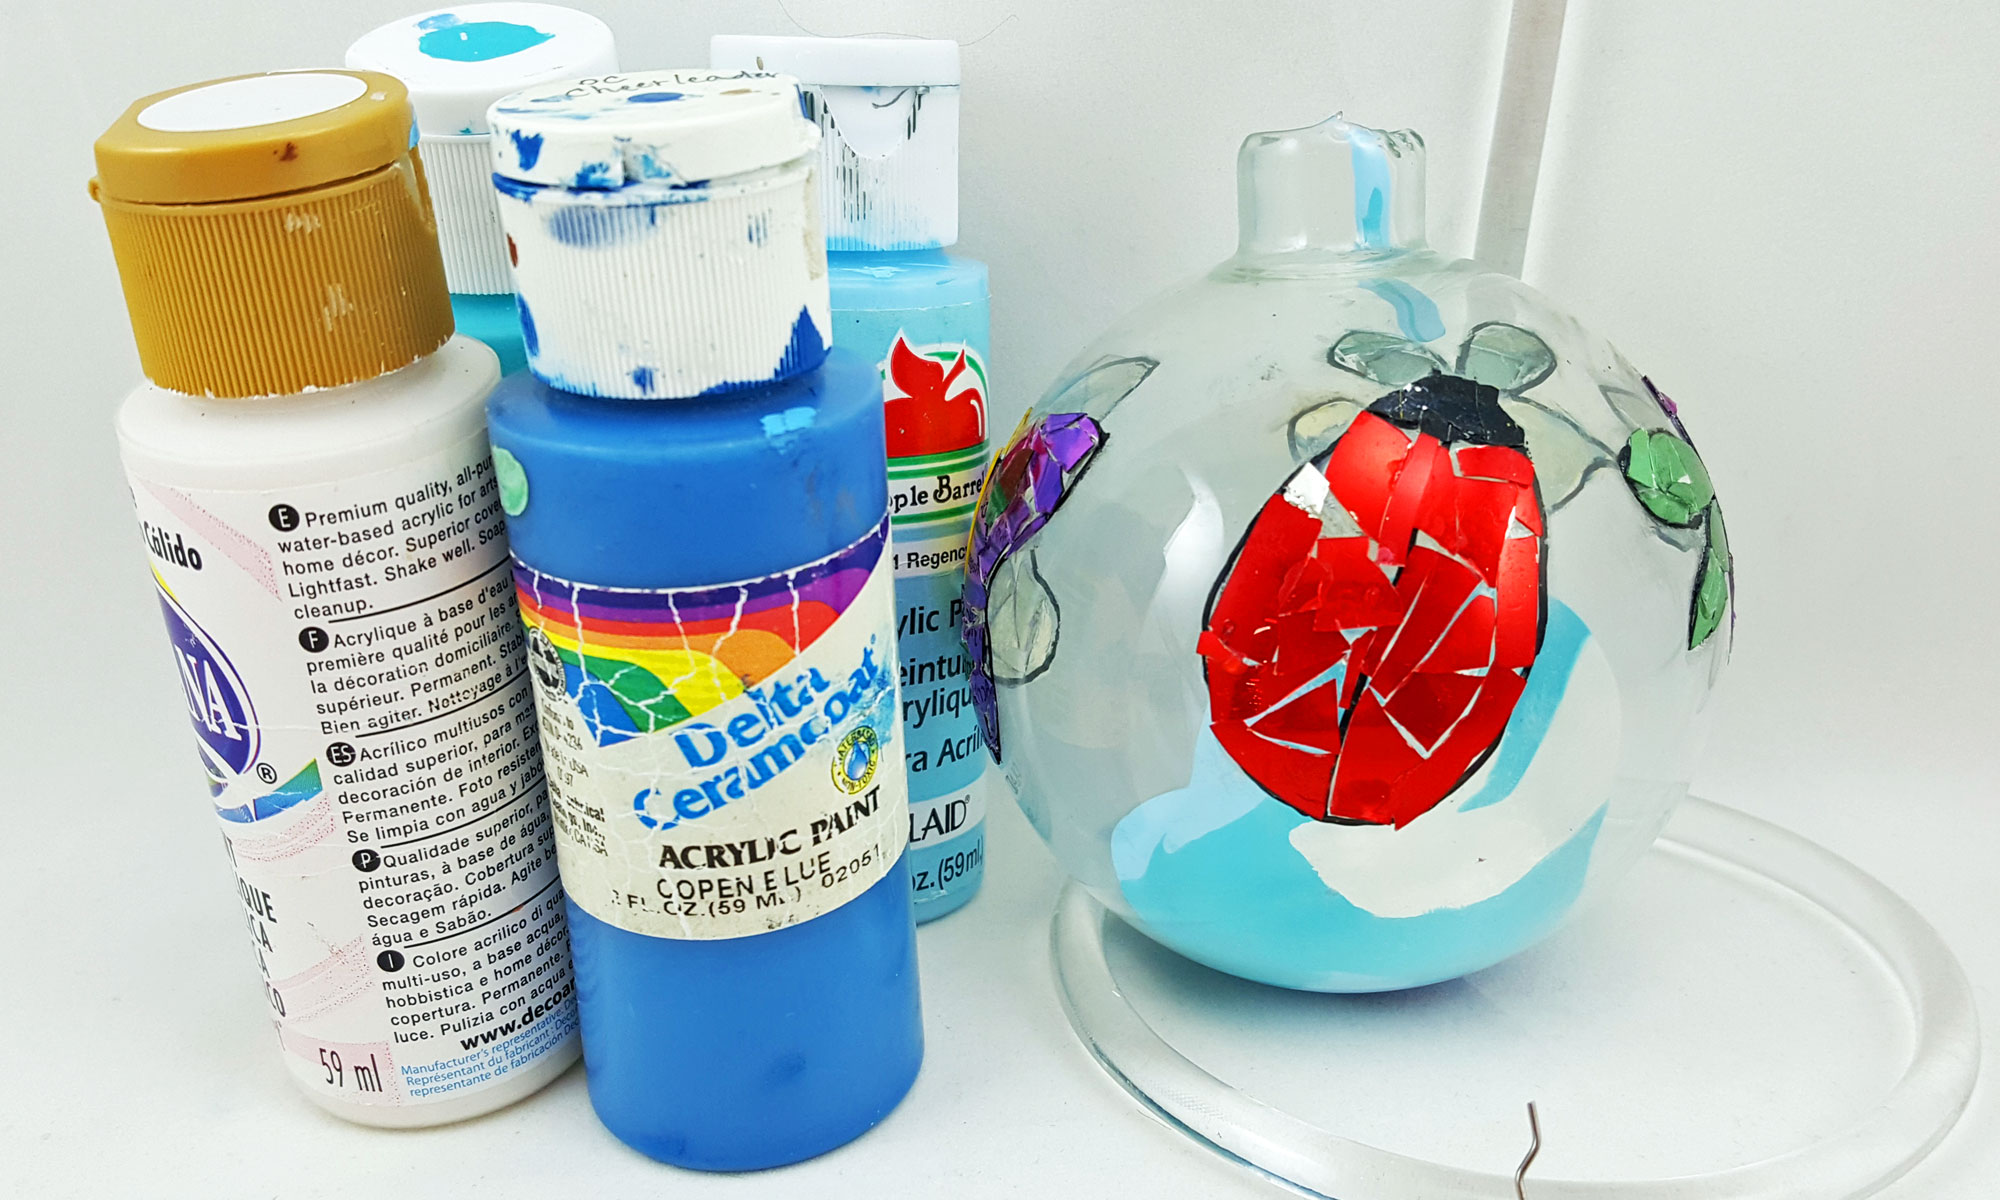 Step 3 is to pour blue and white paint into the clear glass ball and then swirl it around to coat the inside | OrnamentShop.com